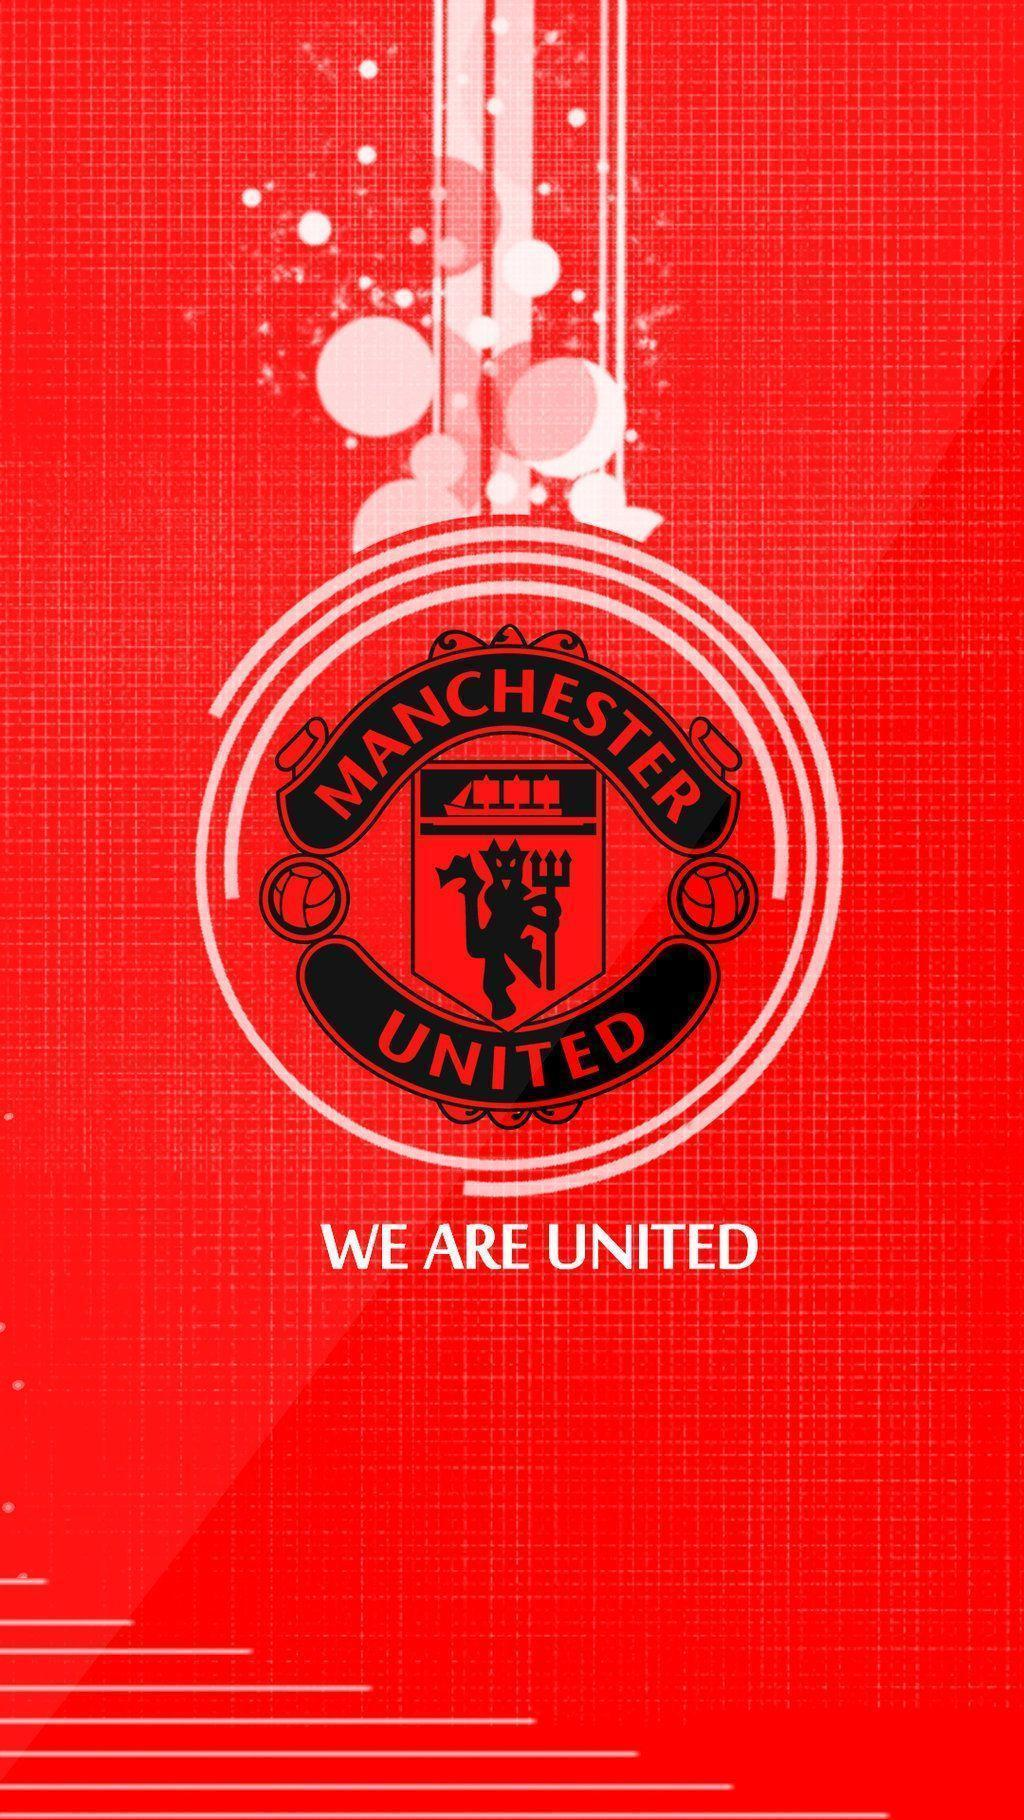 manchester united 4k wallpapers wallpaper cave manchester united 4k wallpapers